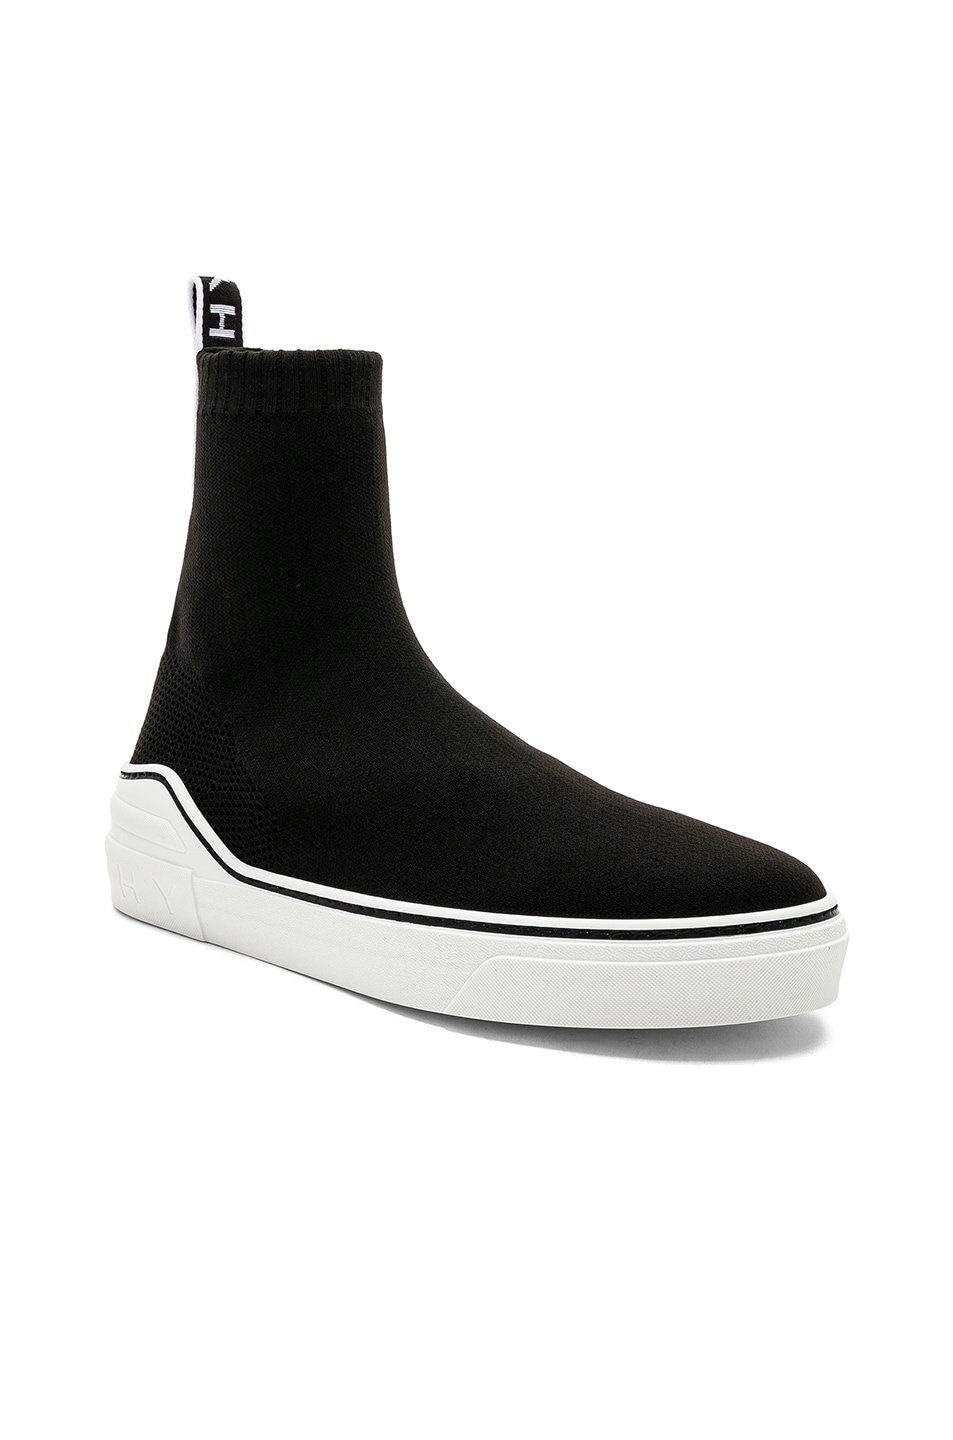 Image 1 of Givenchy George V Mid Sock Sneakers in Black & White